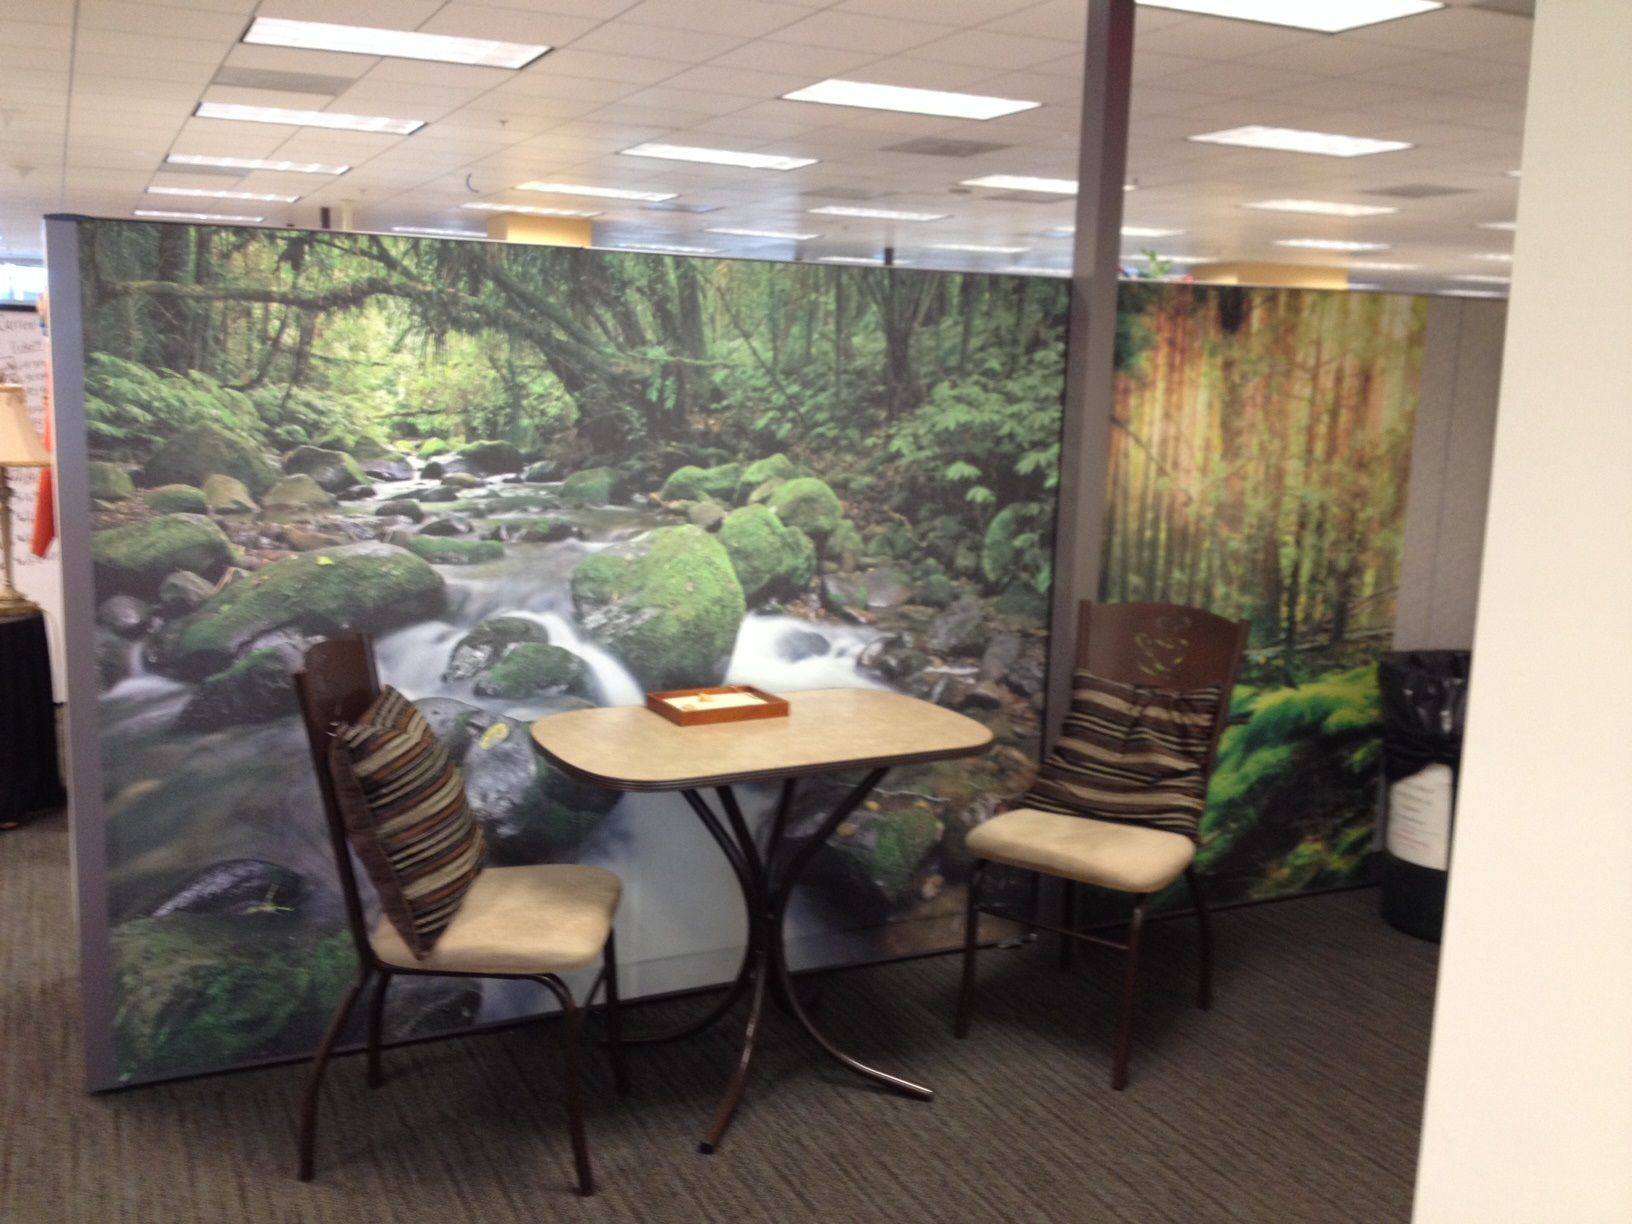 office meeting place decoratedream cubicle wallpaper. looks